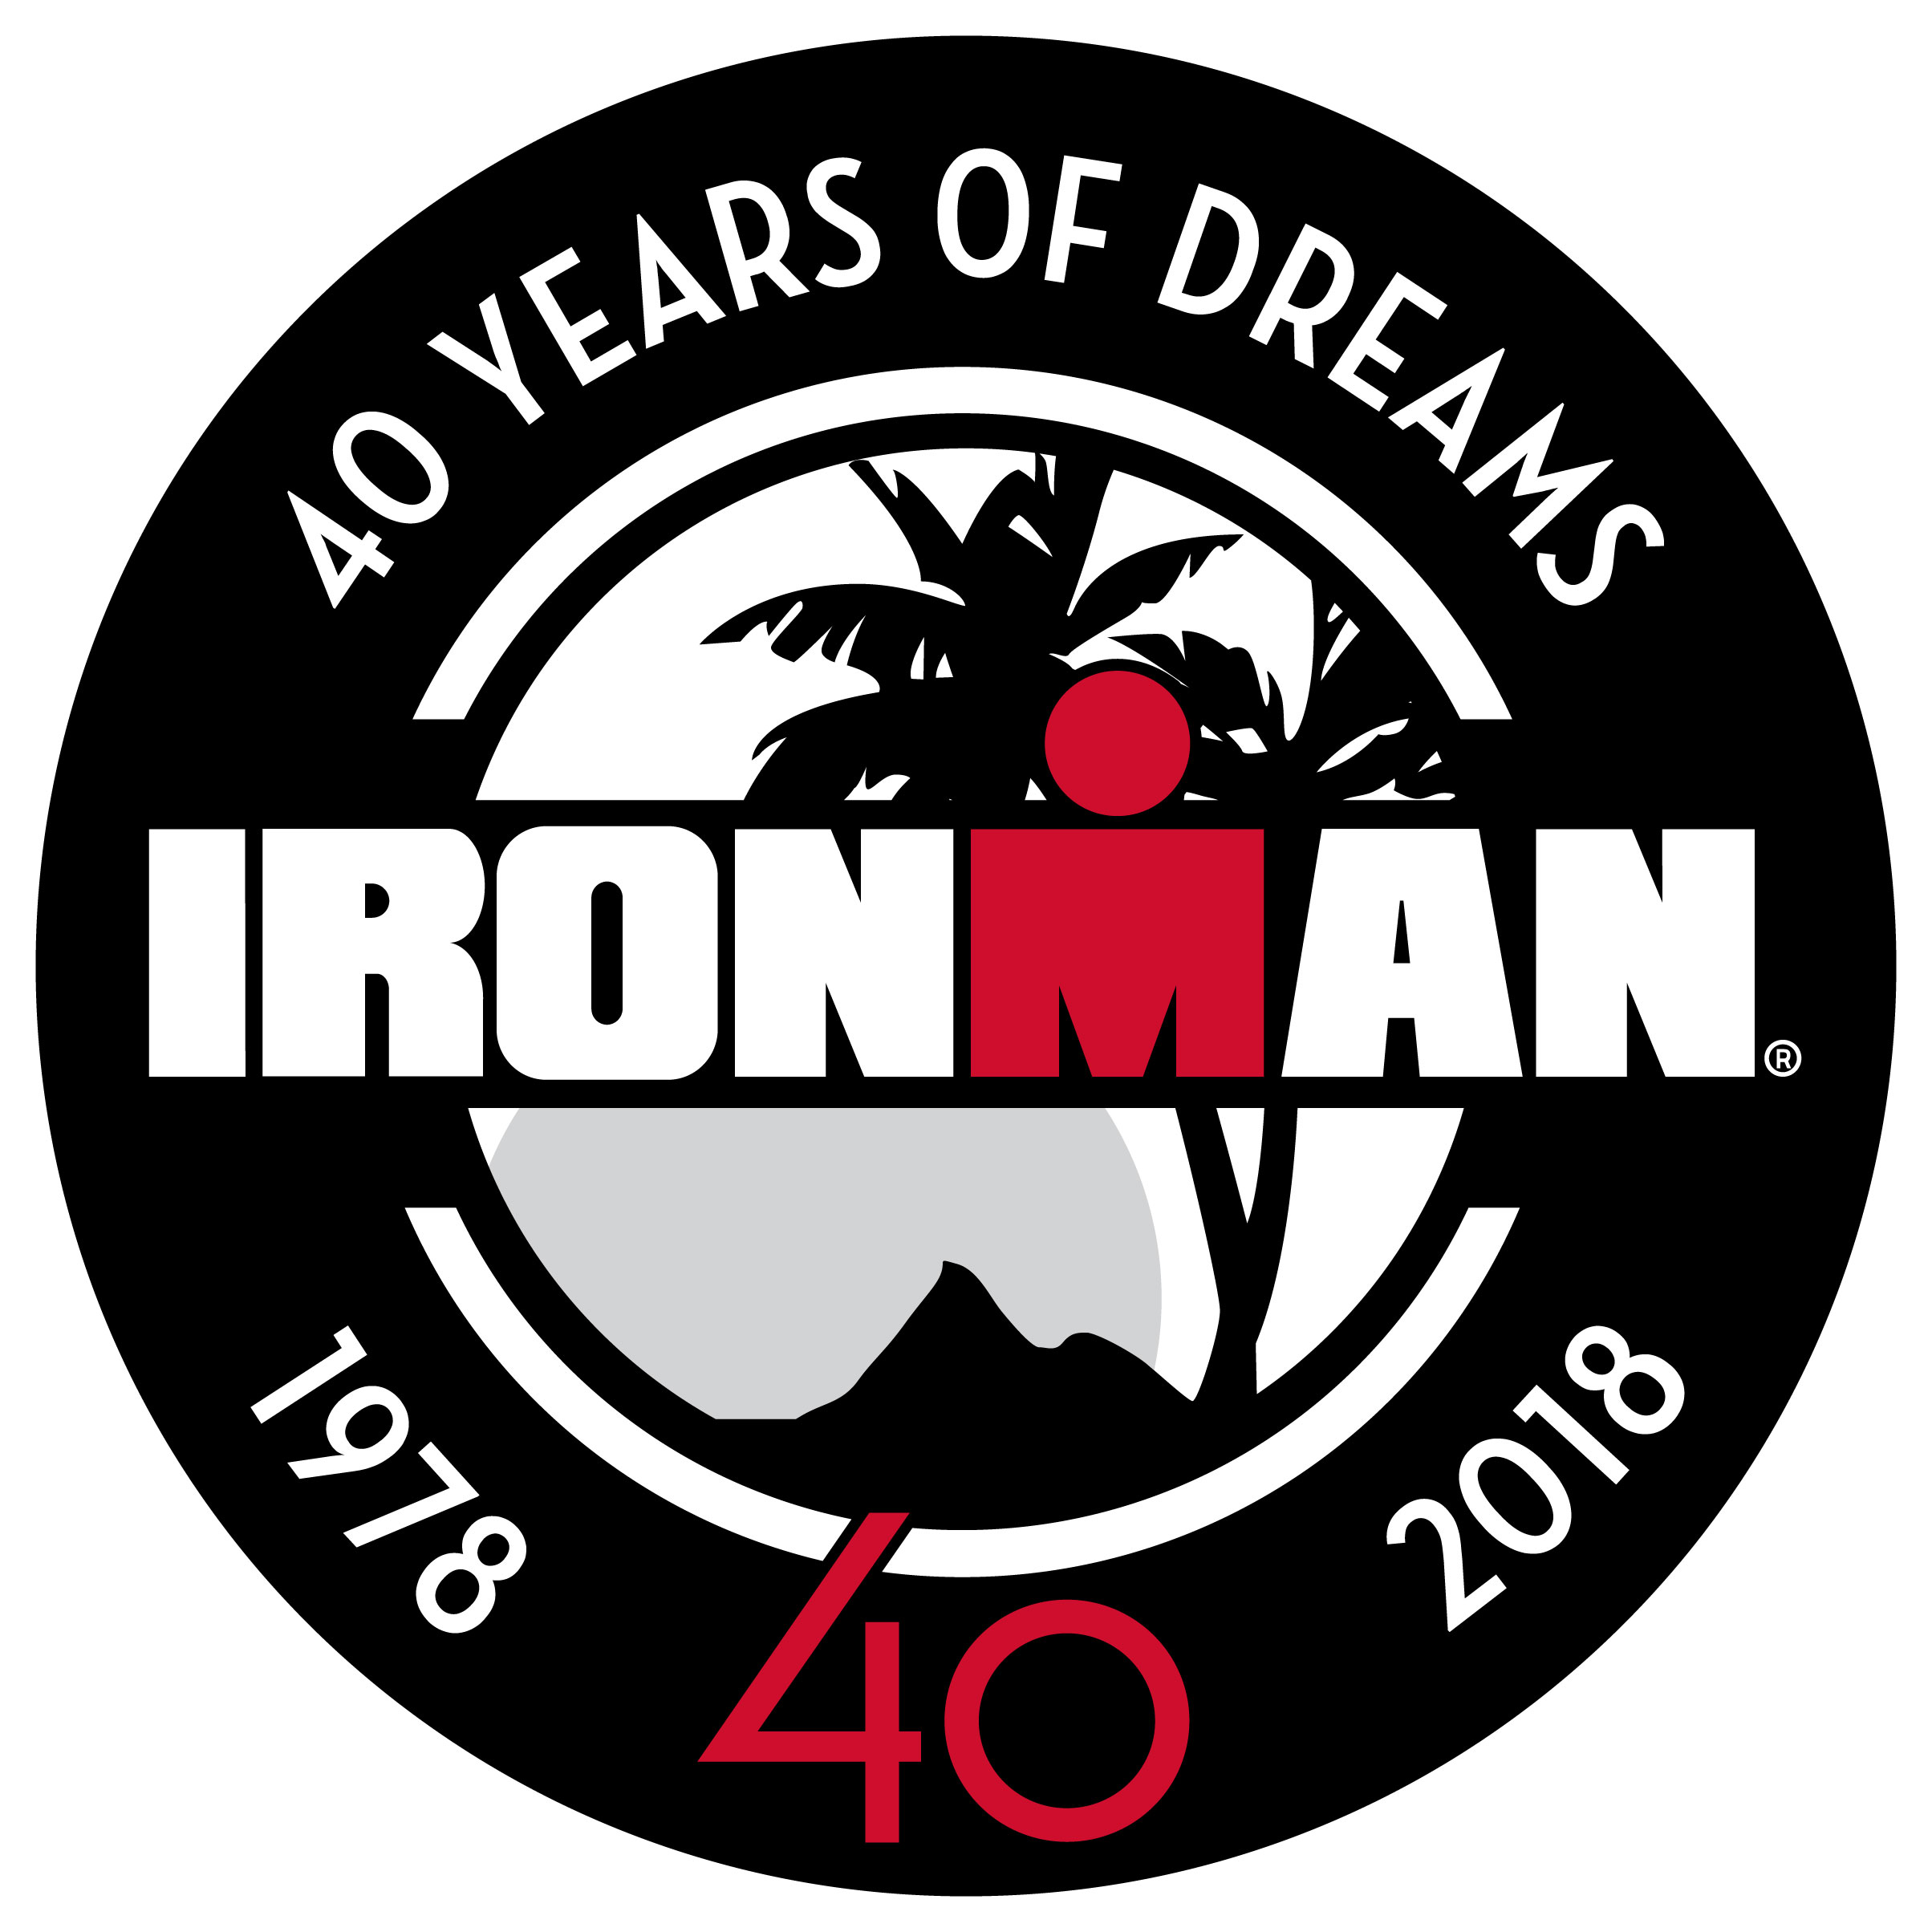 ironman_40yearsofdreams